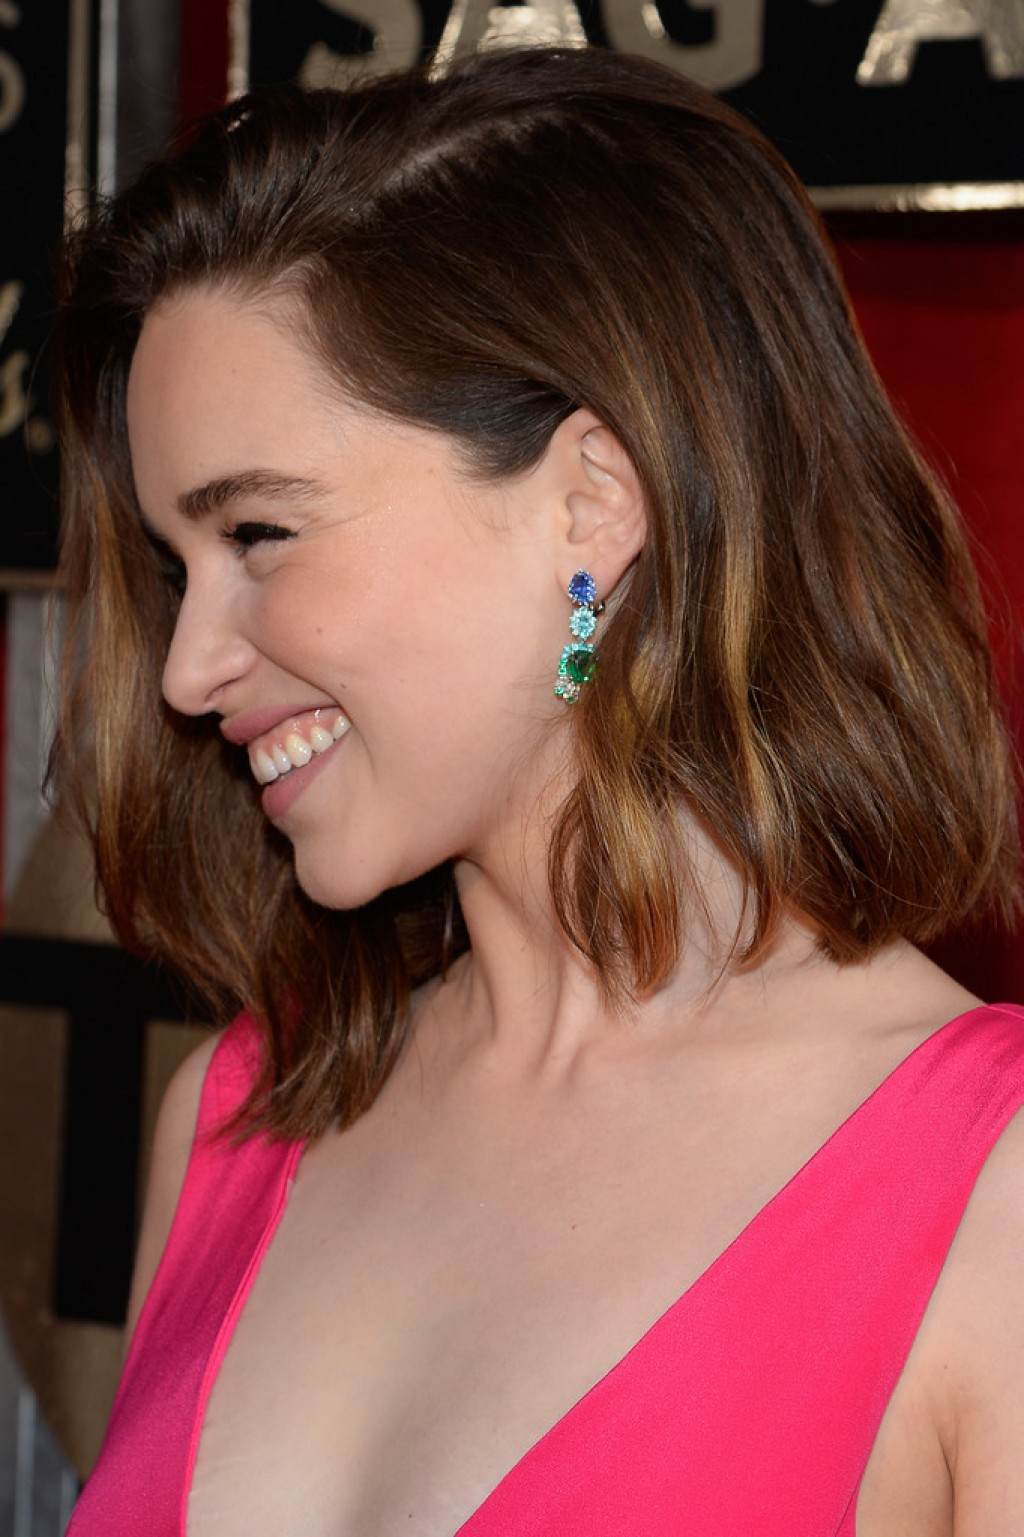 emilia-clarke-2016-sag-earrings-1024x1537